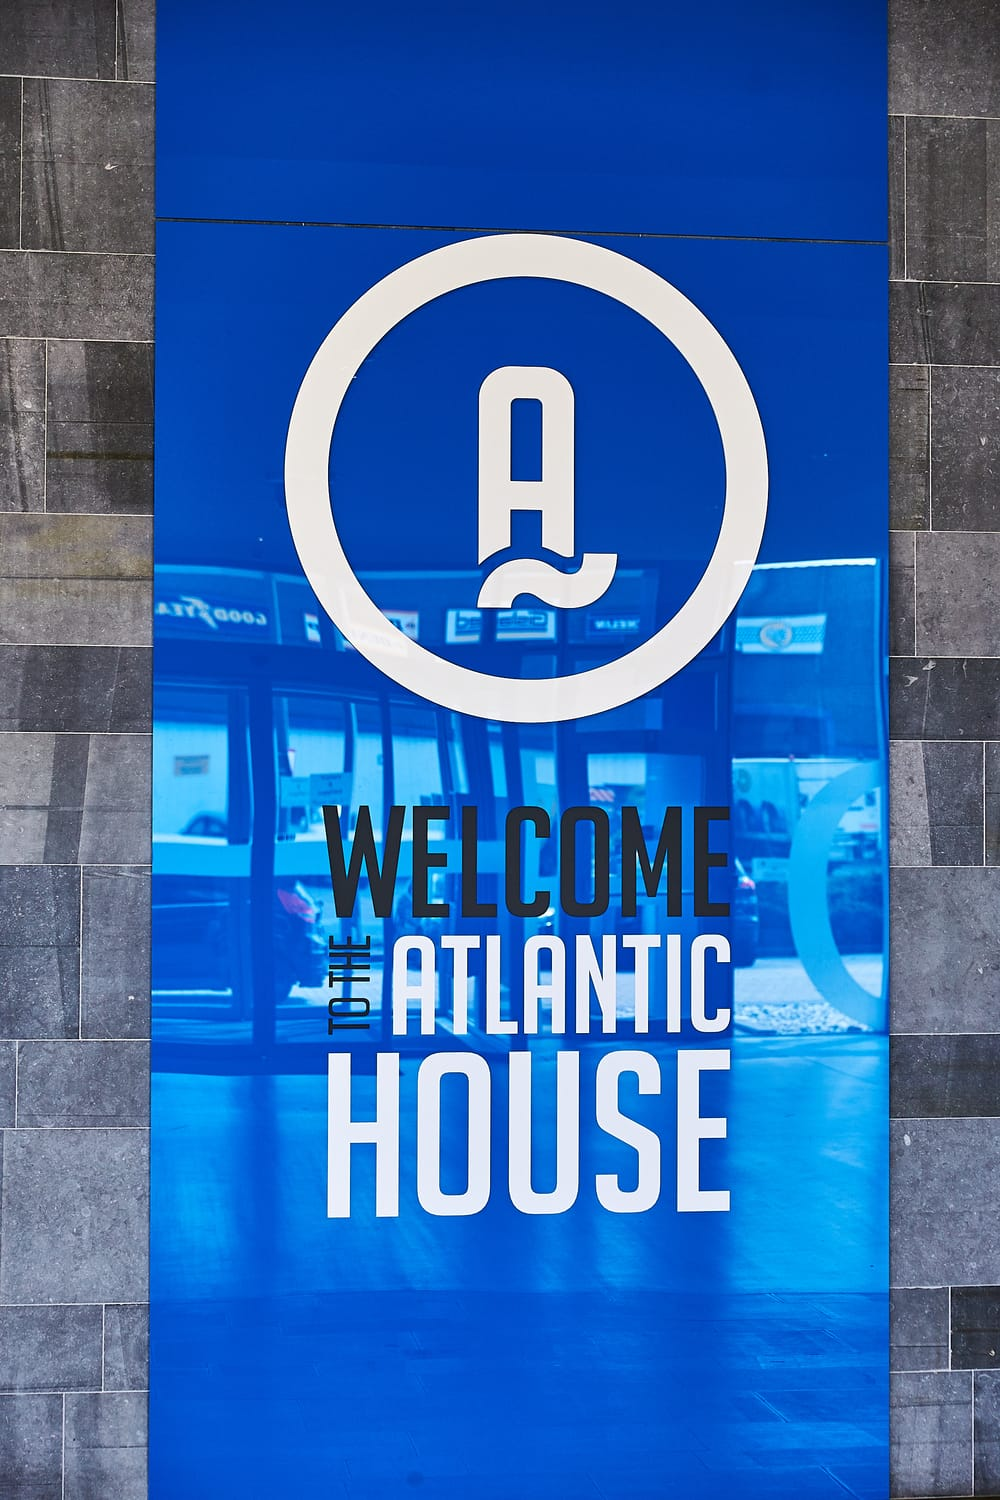 Atlantic House